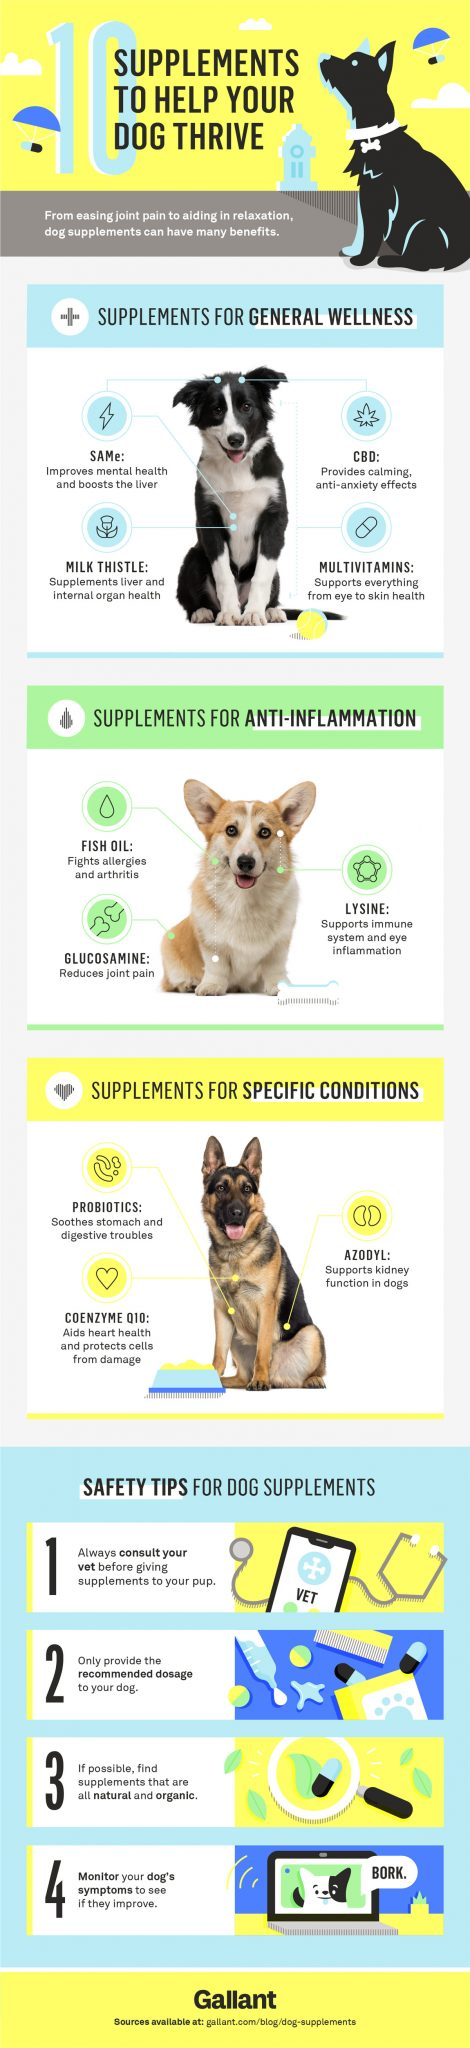 10 supplements to help your dog thrive infographic